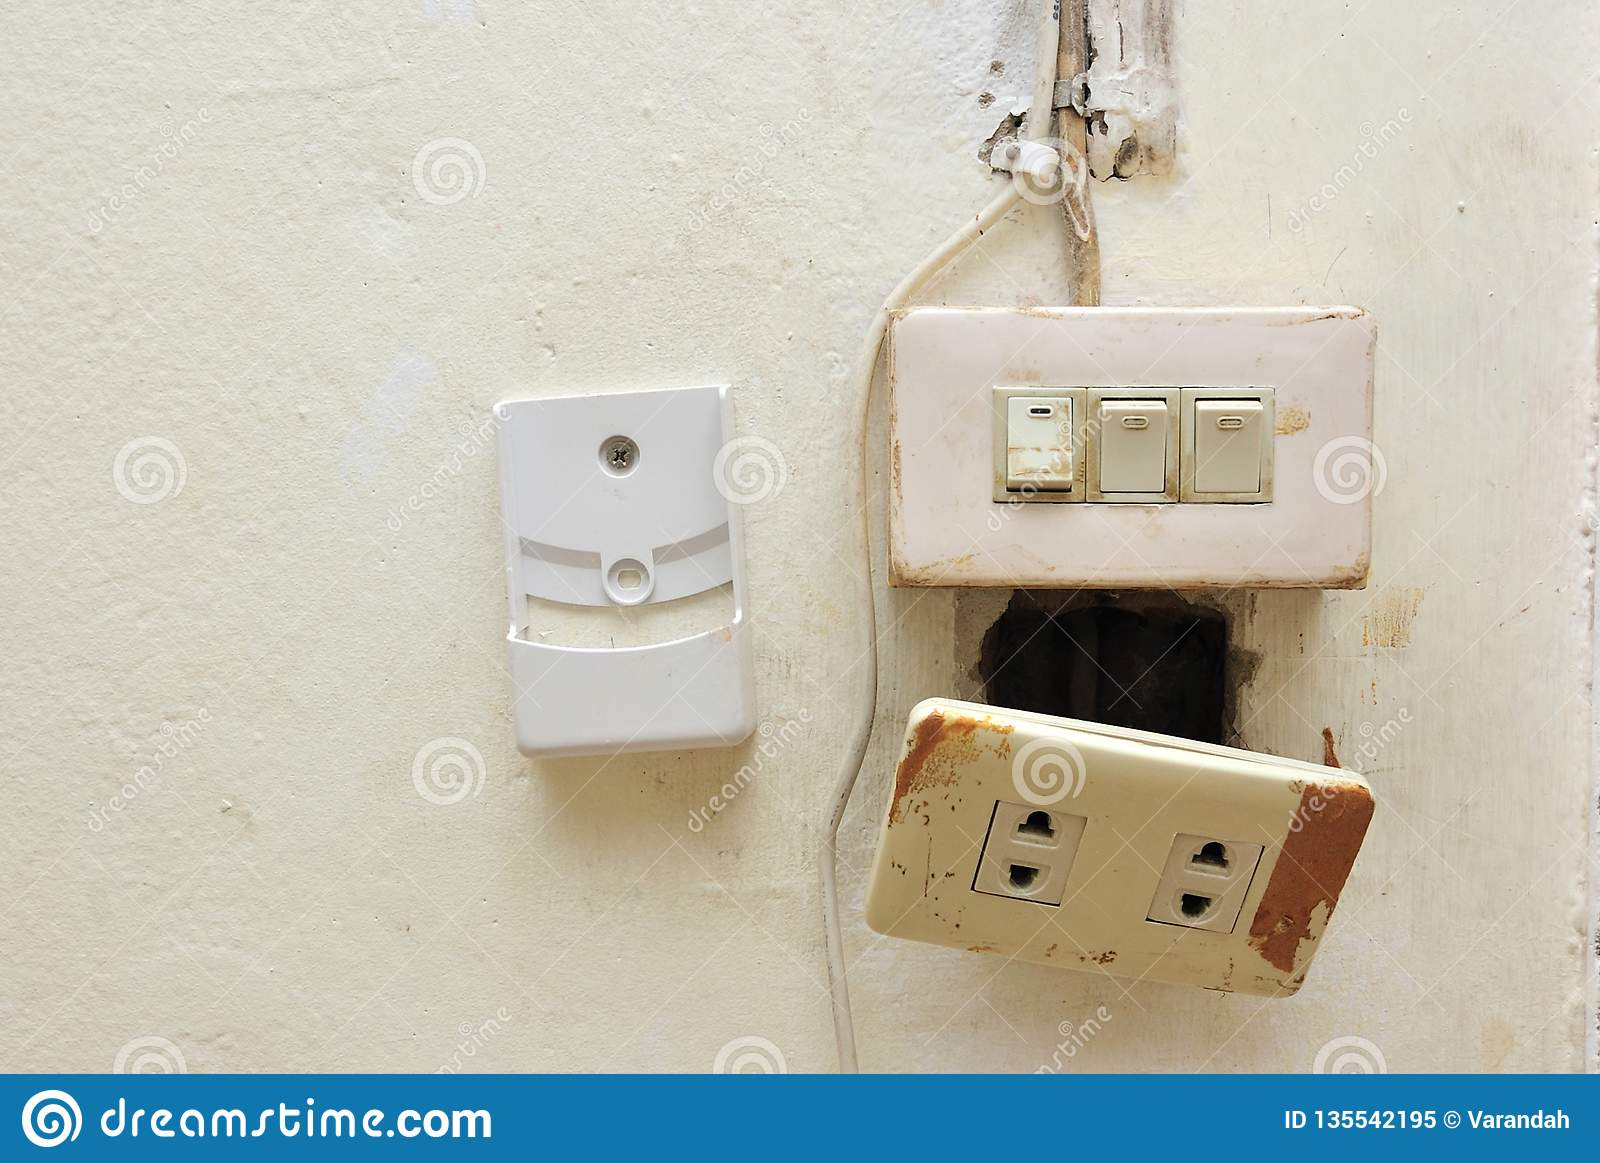 a light switch and electrical breaker with damaged wiring on the wall